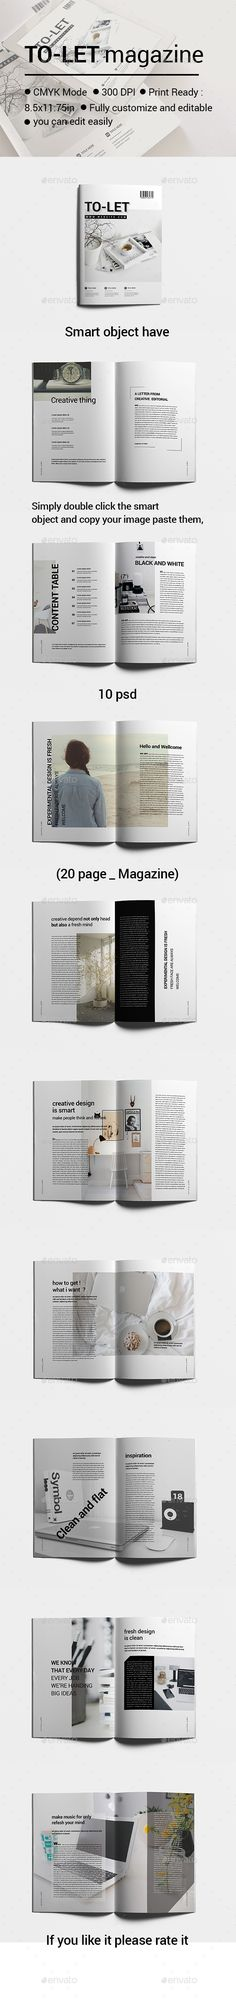 TO_LET magazine_01   Download: https://graphicriver.net/item/to_let-magazine_01/17382420?ref=Ponda #indesign #layout #template